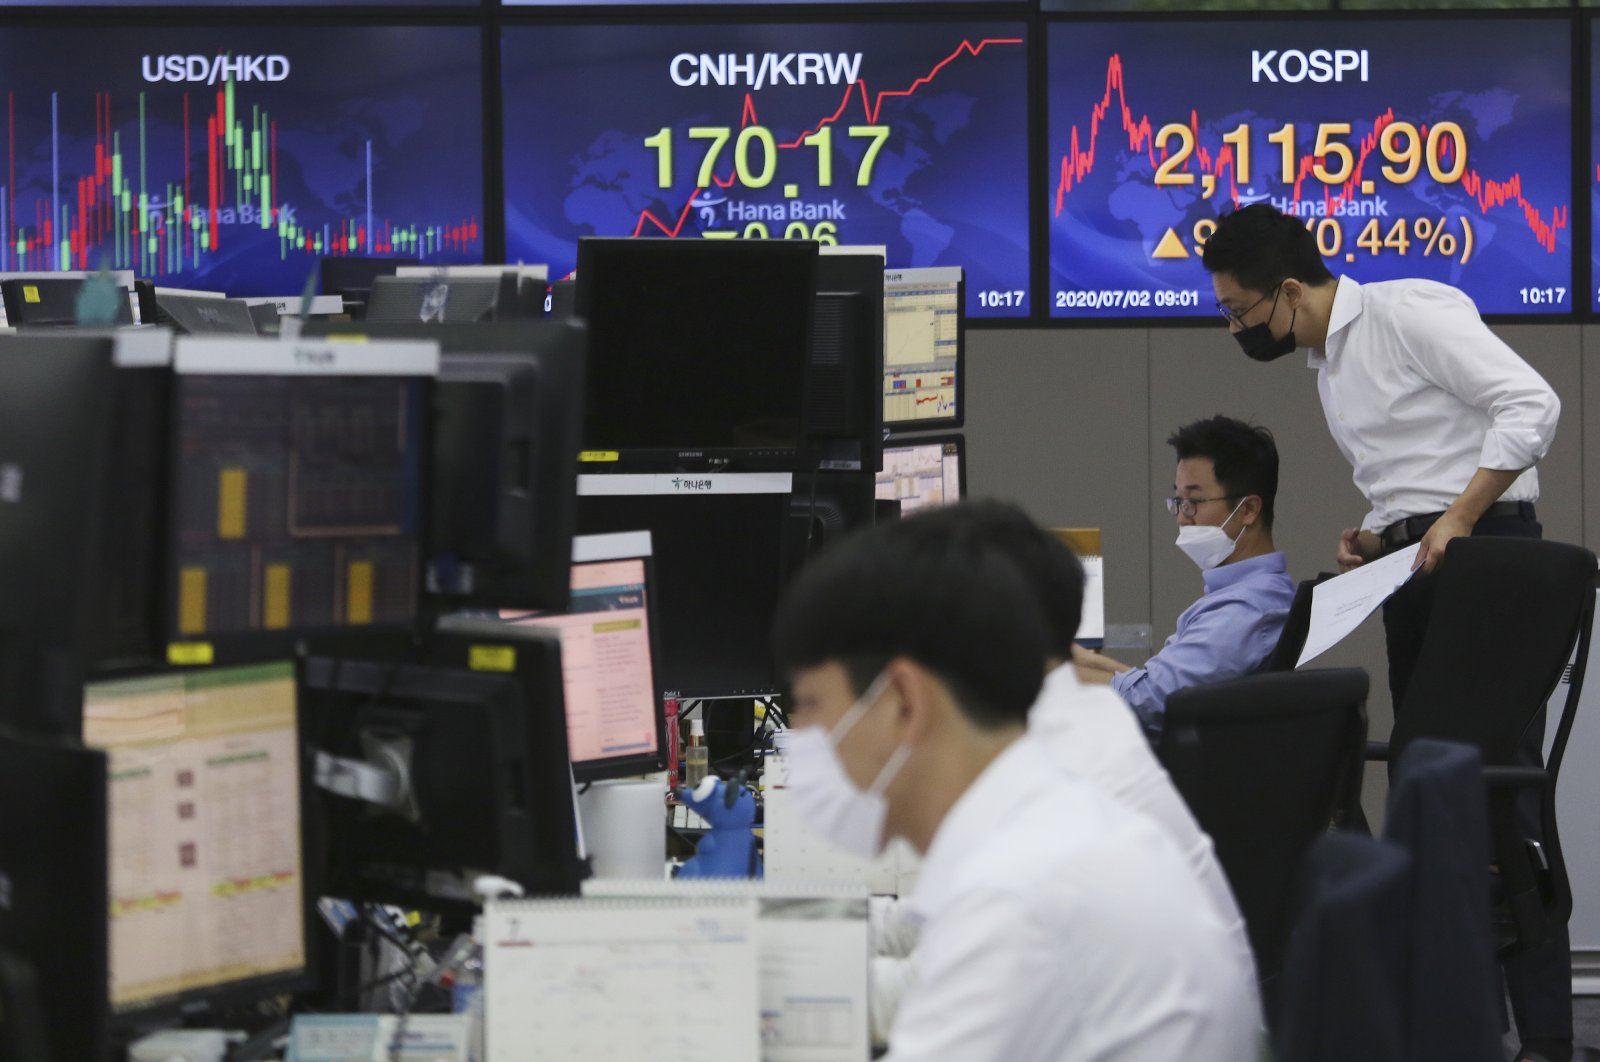 Currency traders watch monitors at the foreign exchange dealing room of the KEB Hana Bank headquarters in Seoul, South Korea, July 2, 2020. (AP Photo)